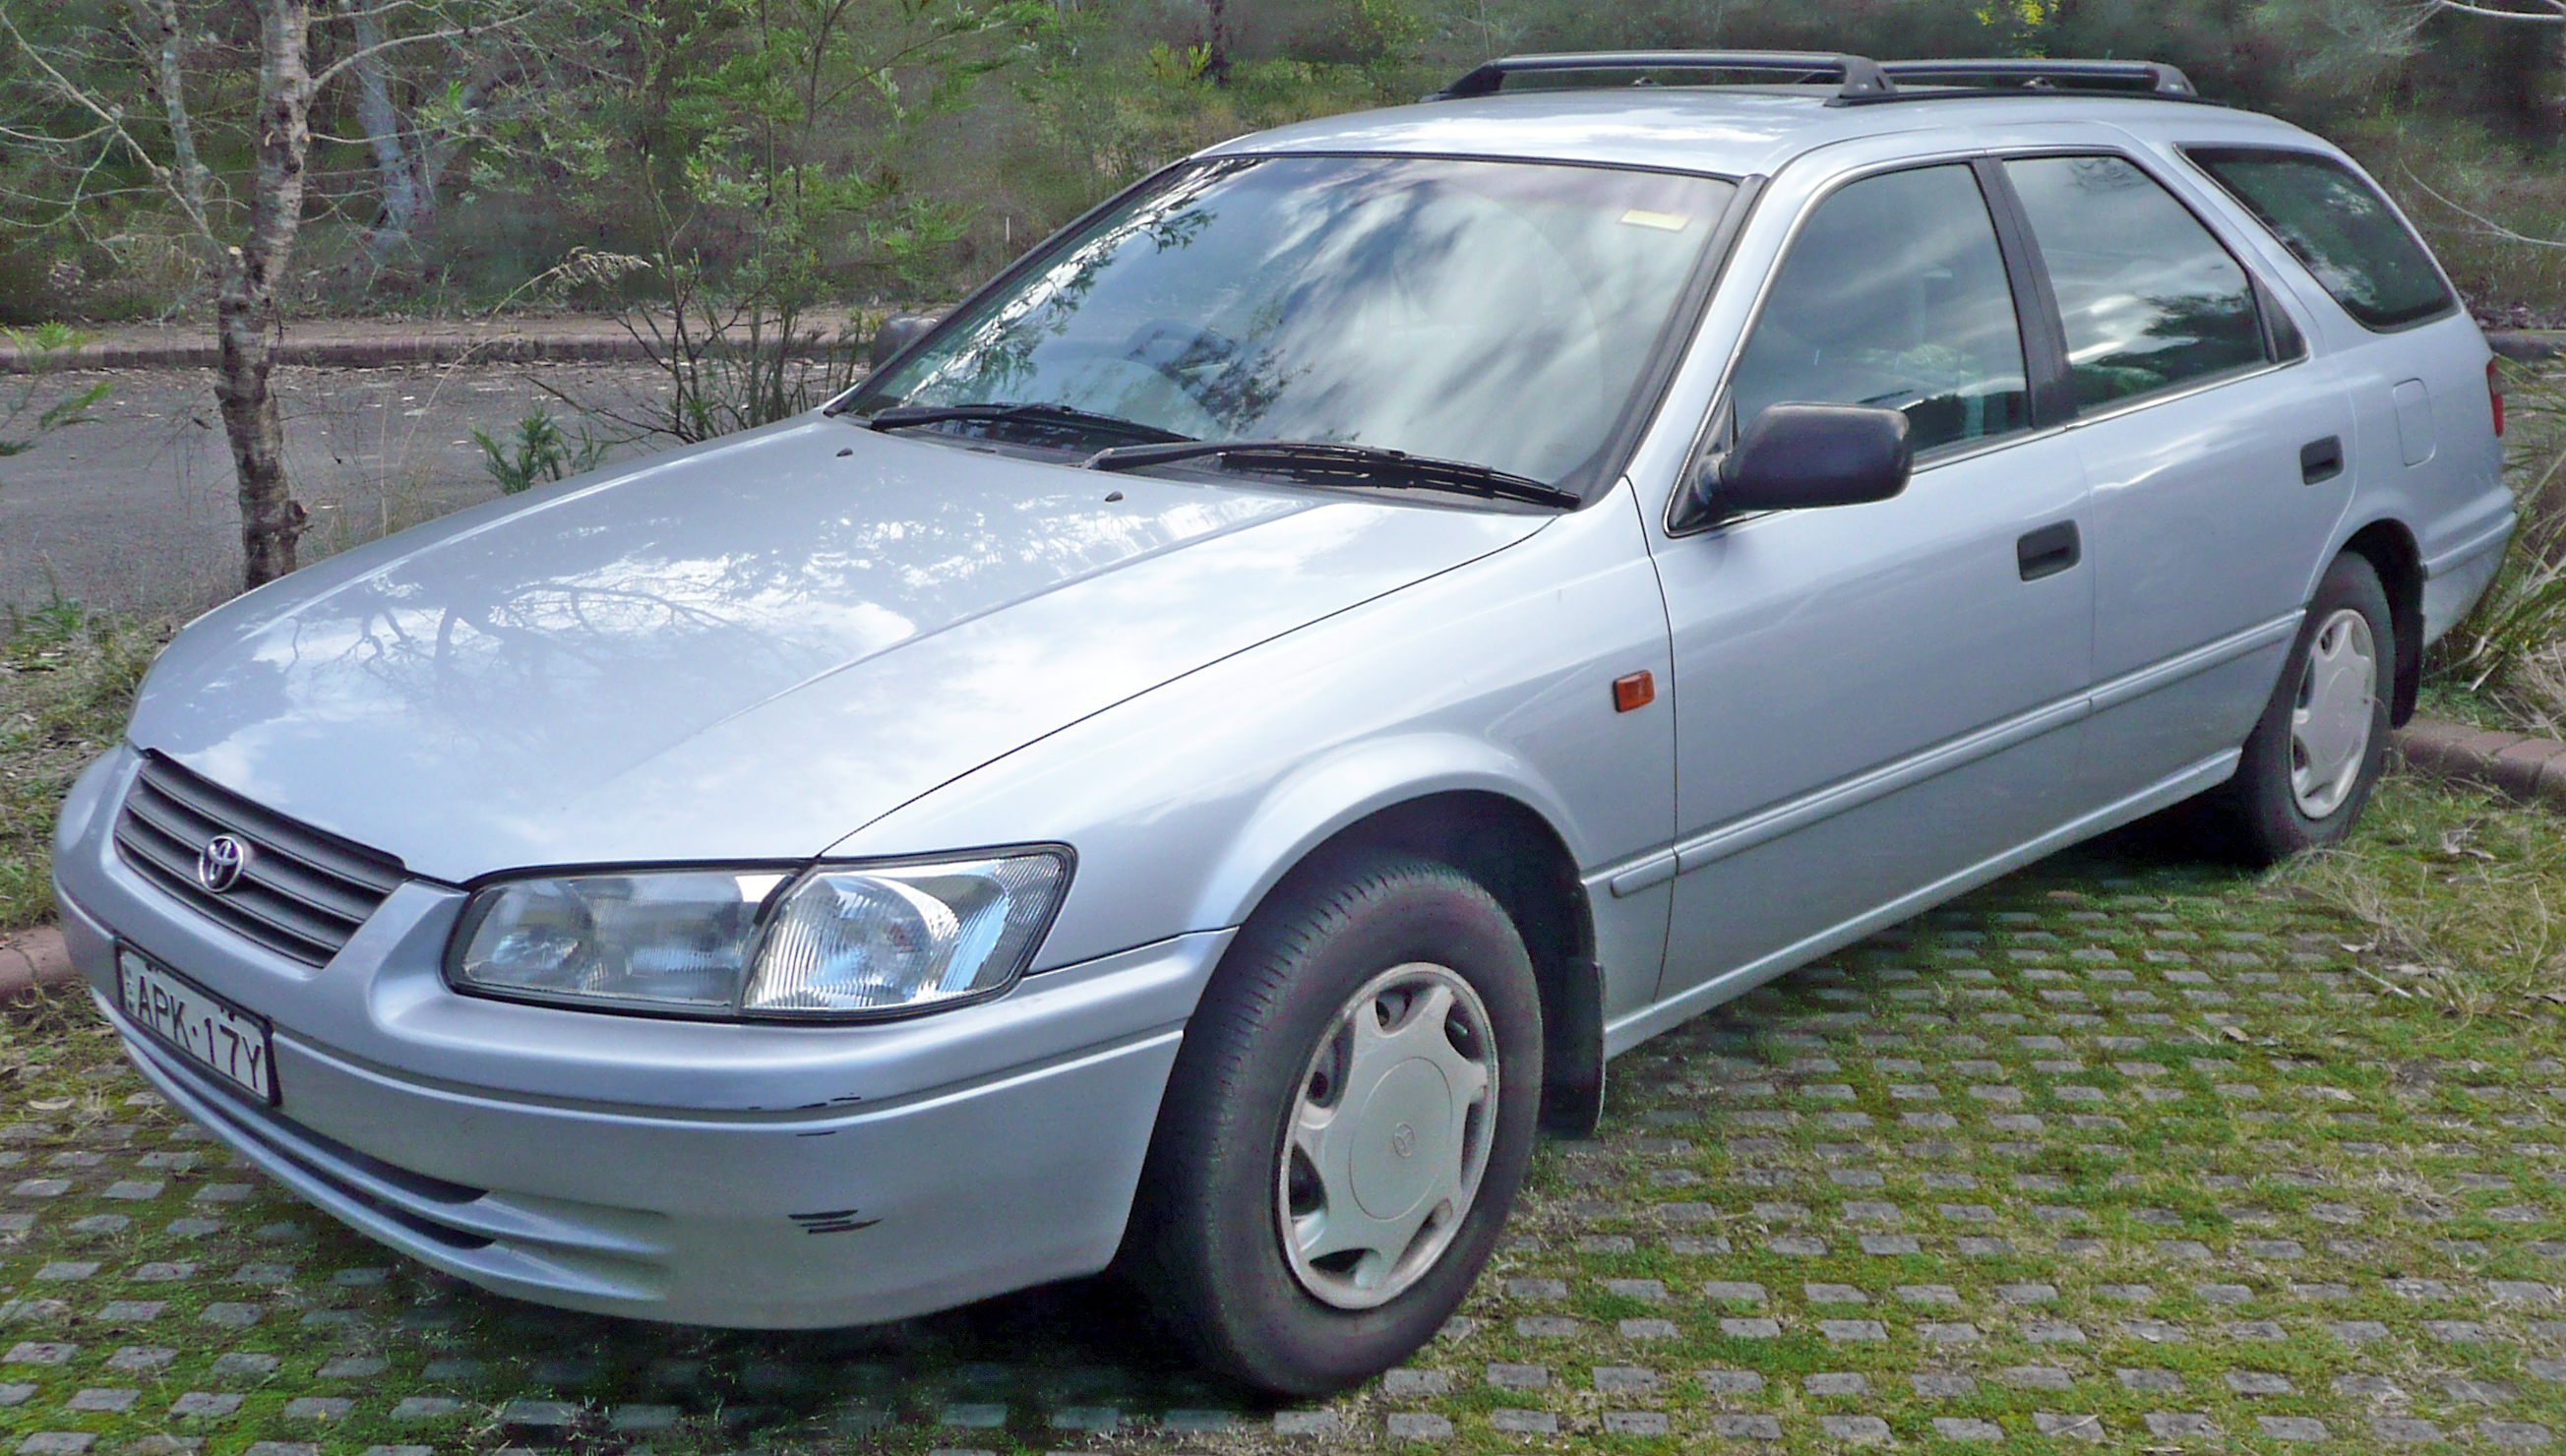 98 Toyota Camry Specs - New Cars, Used Cars, Car Reviews and Pricing